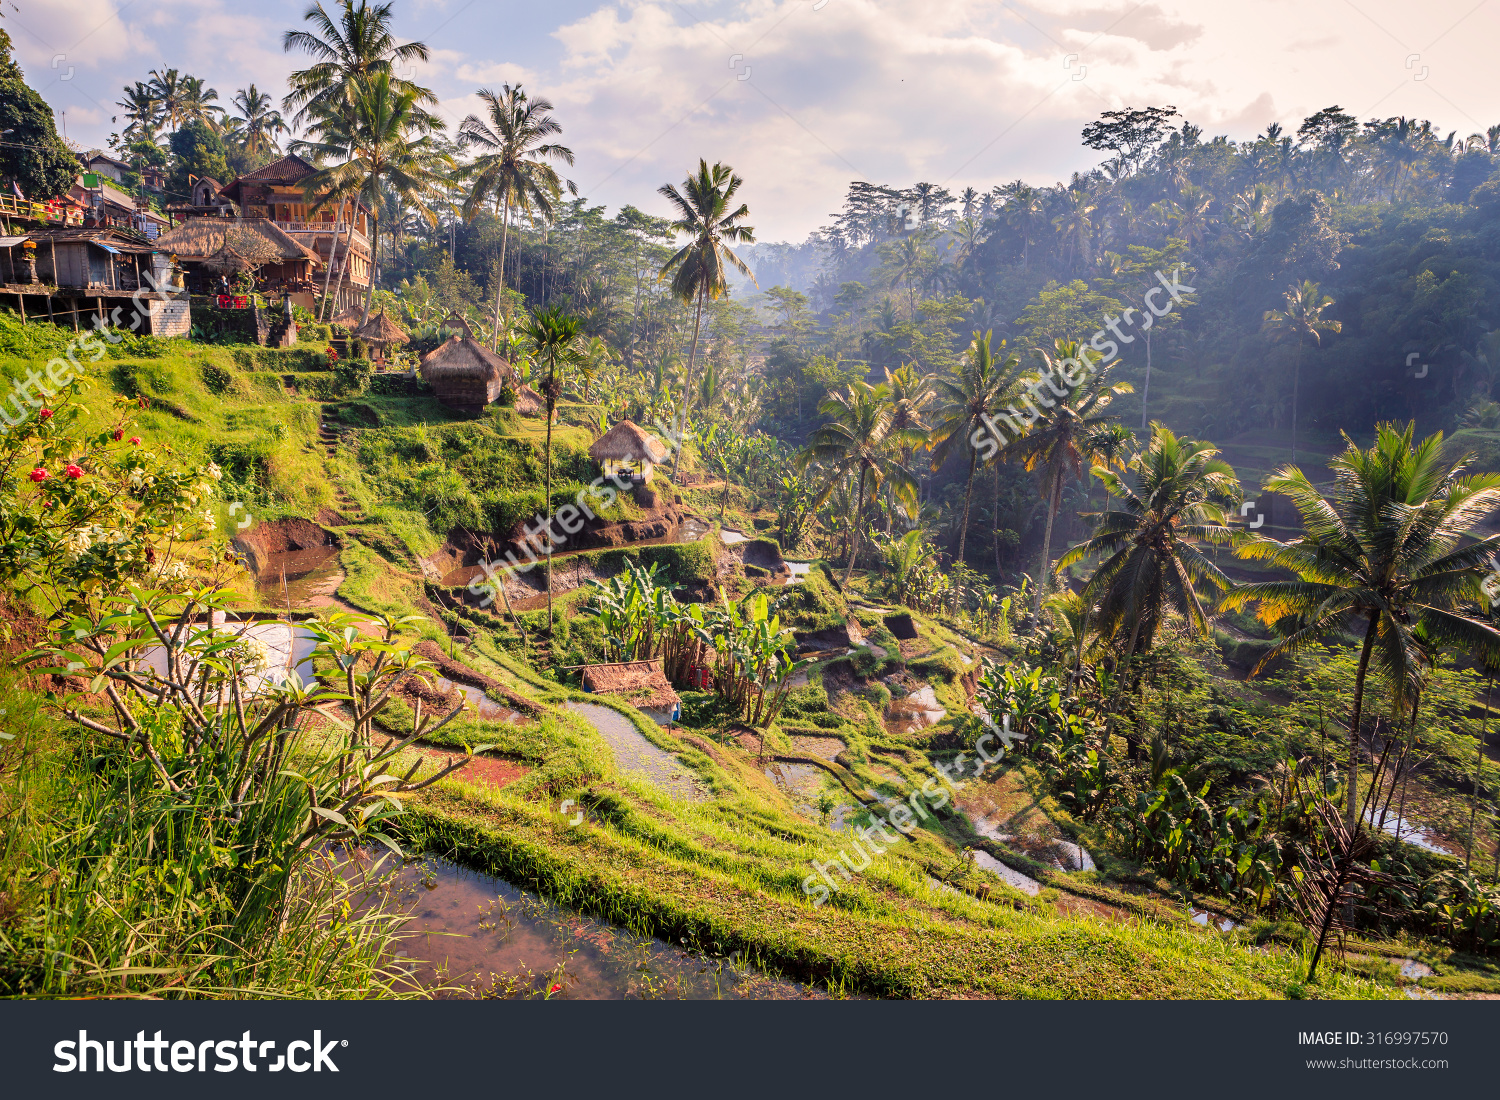 stock-photo-spectacular-rice-fields-in-the-jungle-and-the-mountain-near-ubud-in-bali-316997570